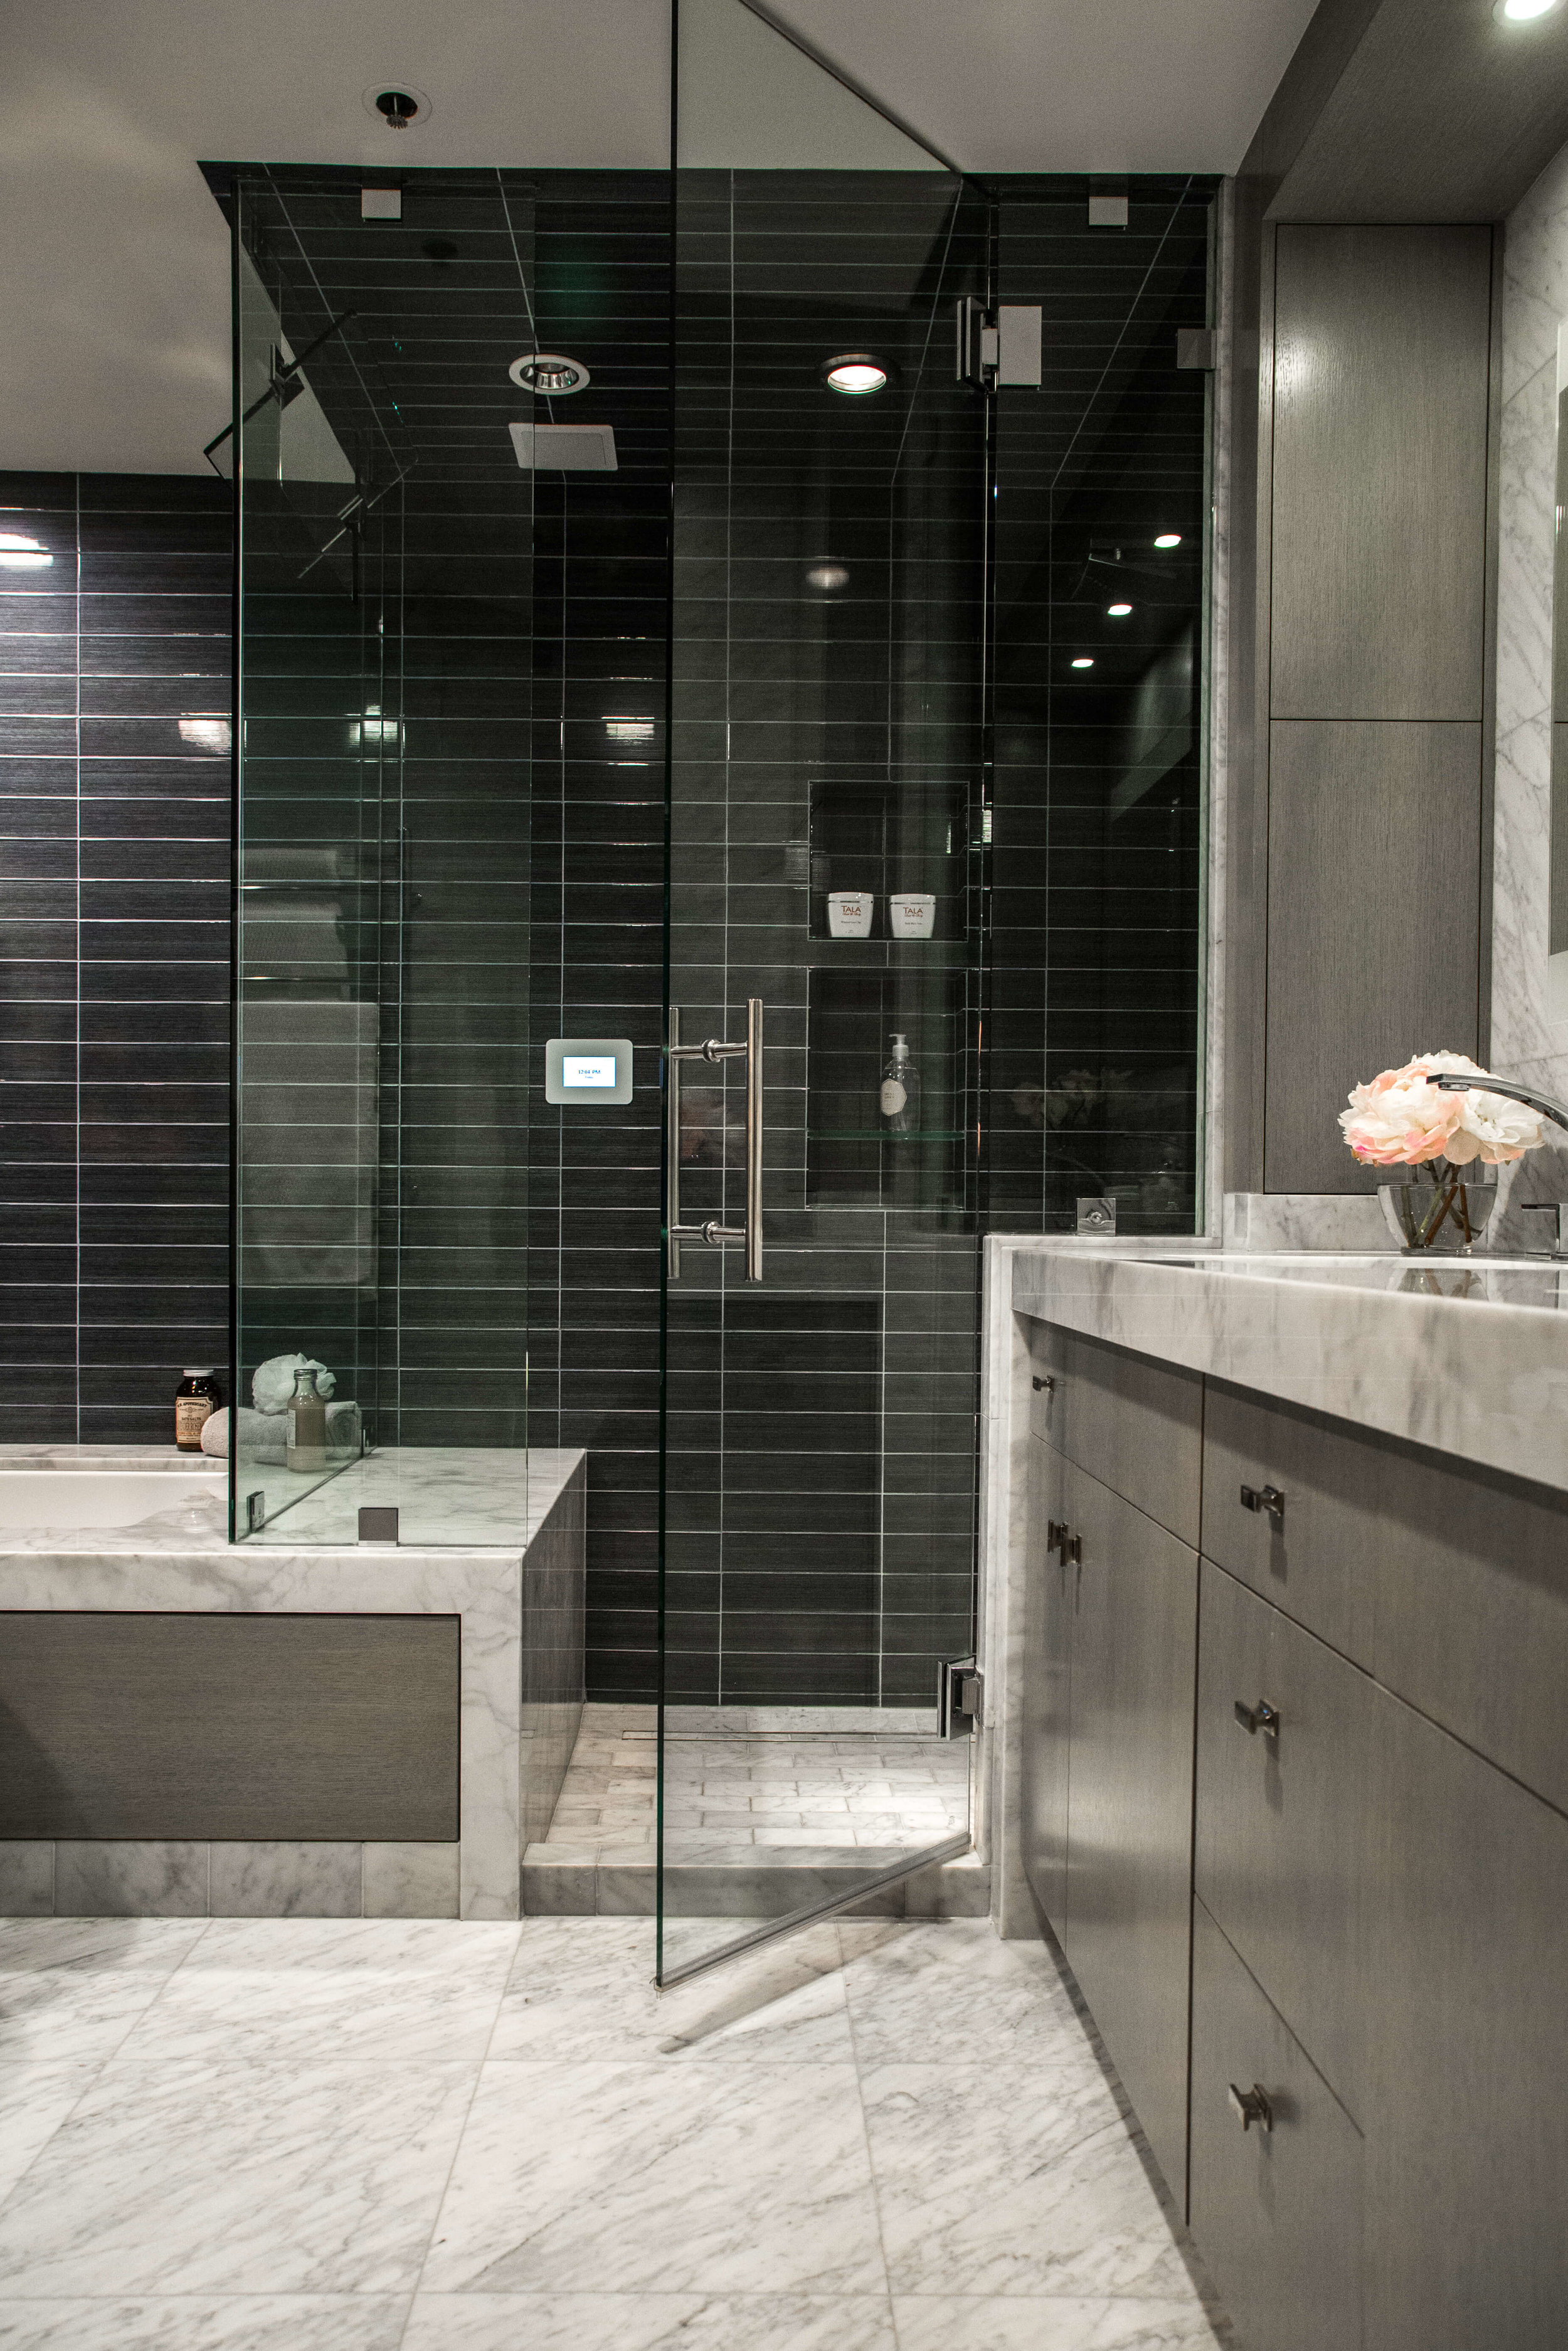 11 simple ways to make a small bathroom look bigger designed - Bathroom tile design ideas for small bathrooms ...